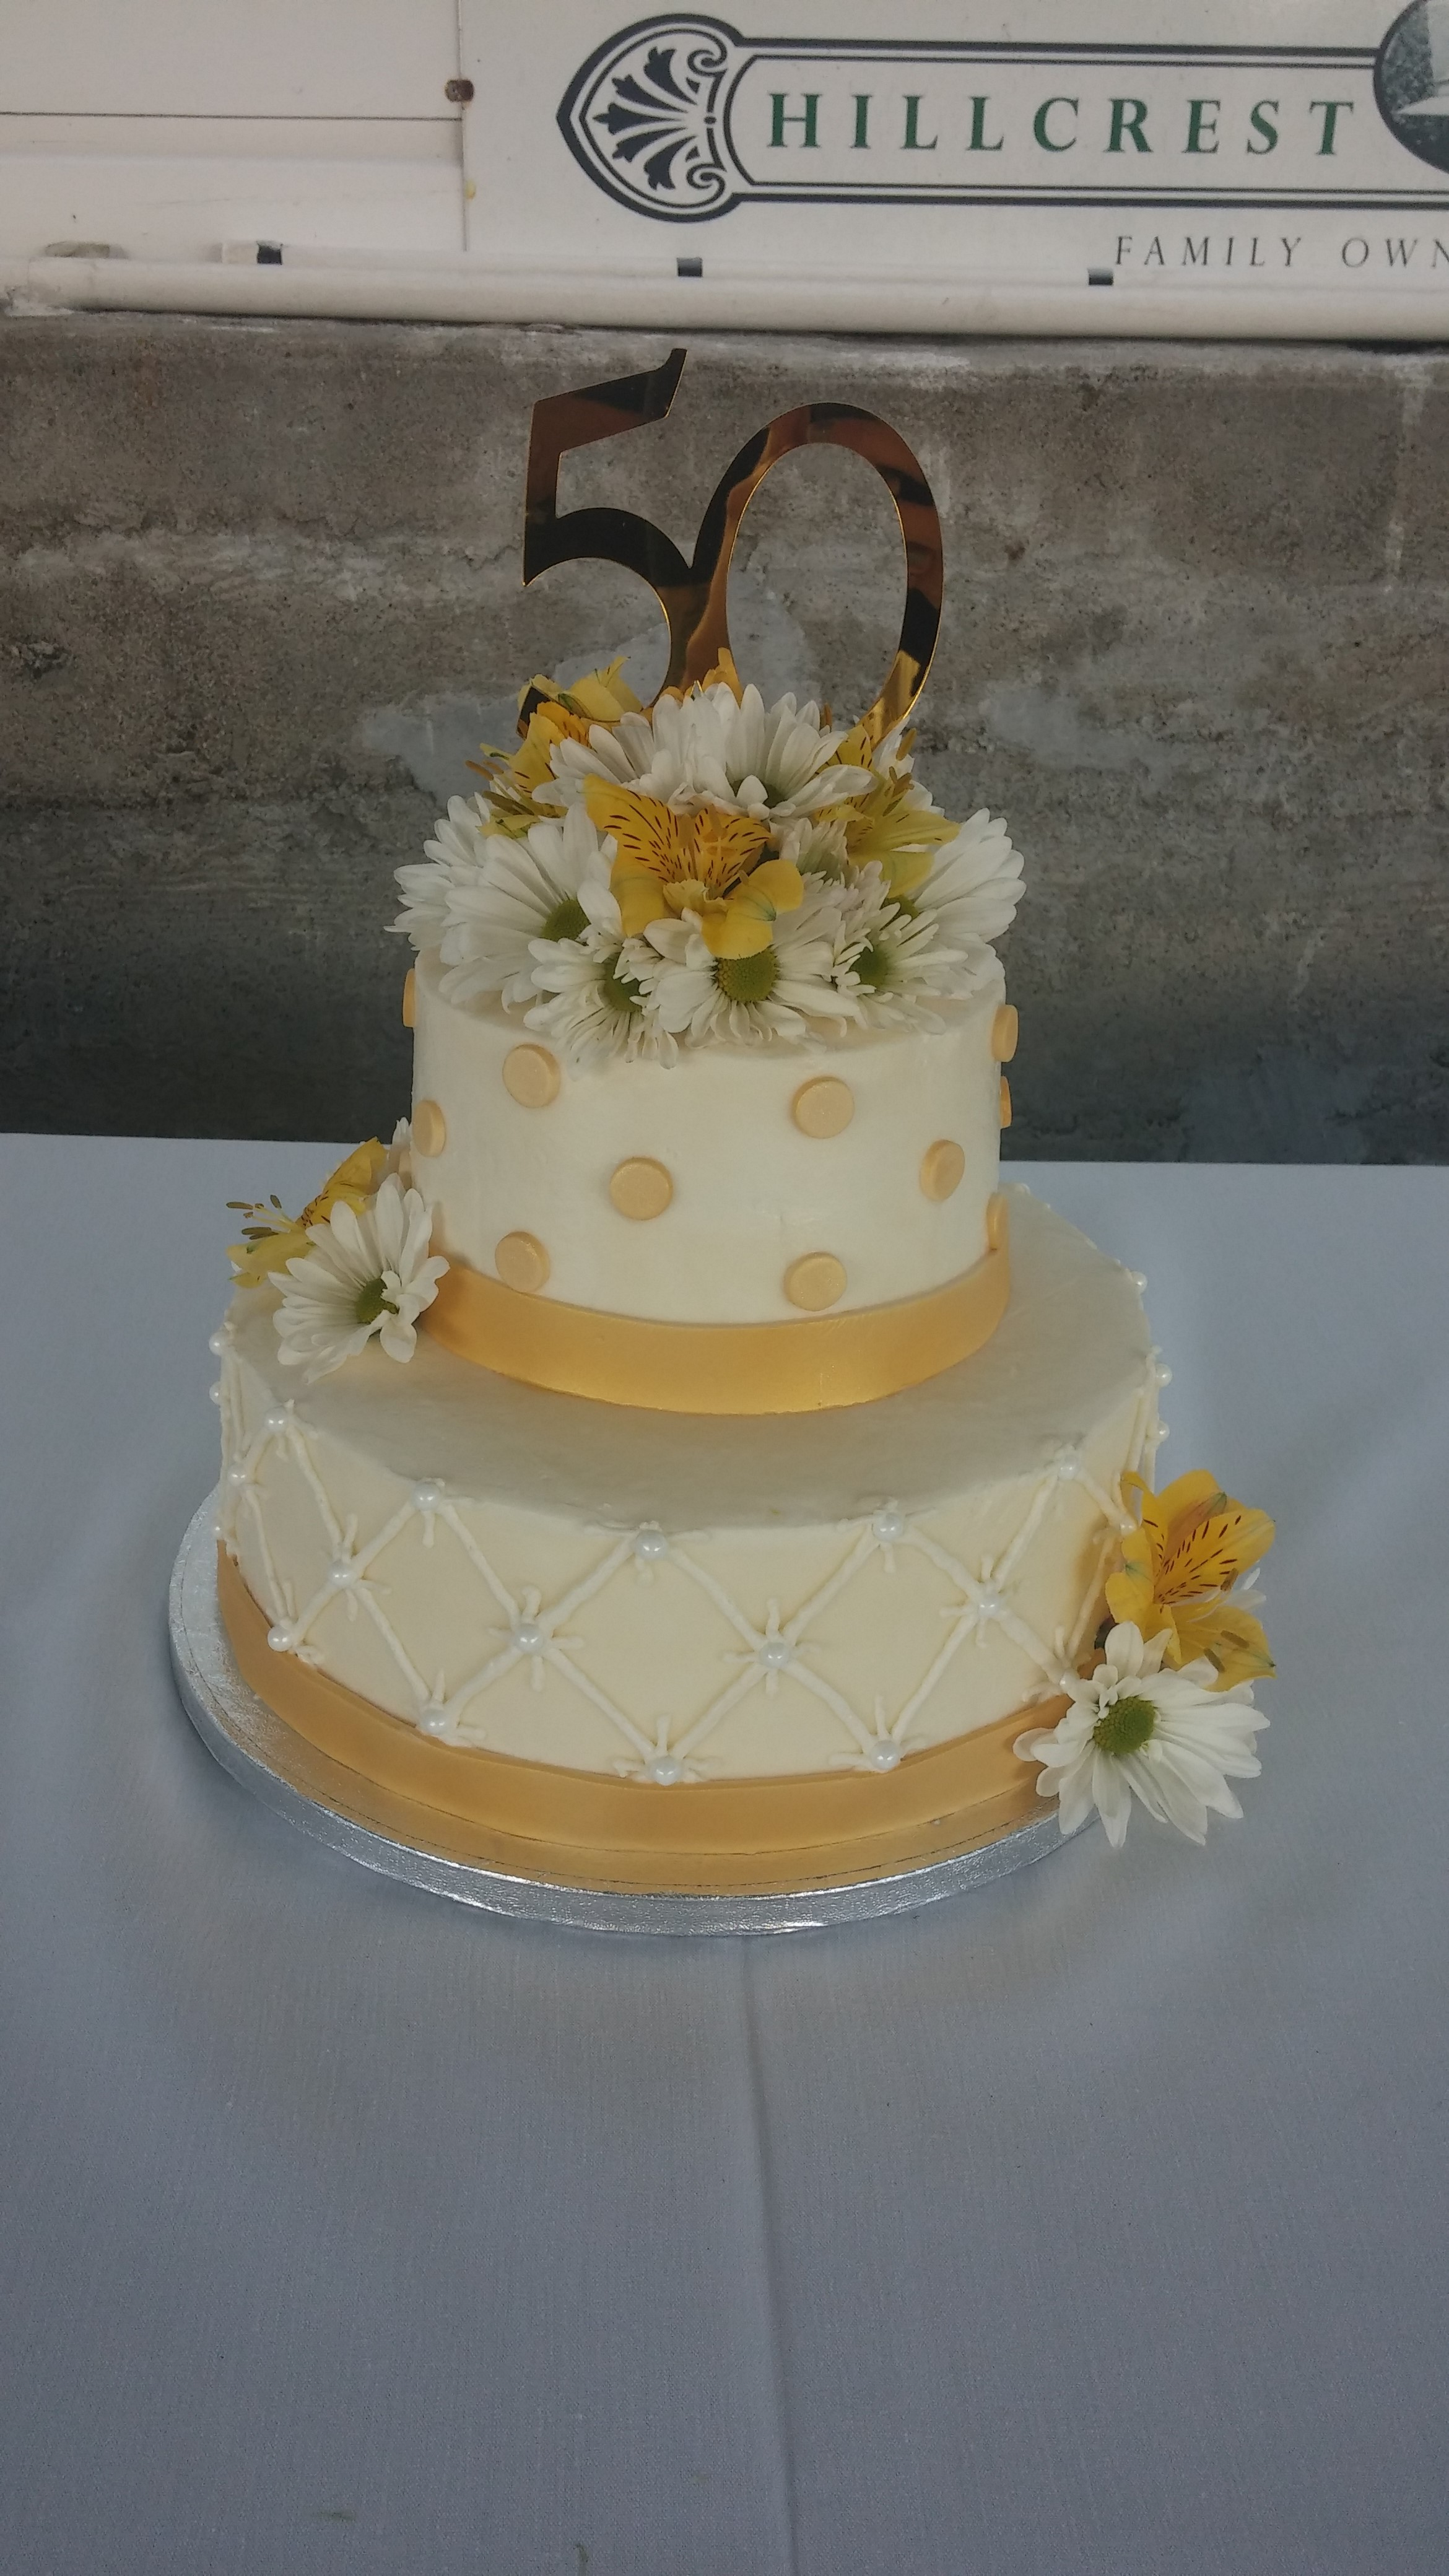 We Have Helped Make Over 100 Brides And Grooms Their Day Even More Special Call To Set Up A Cake Tasting With One Of Our Decorators Discuss Your